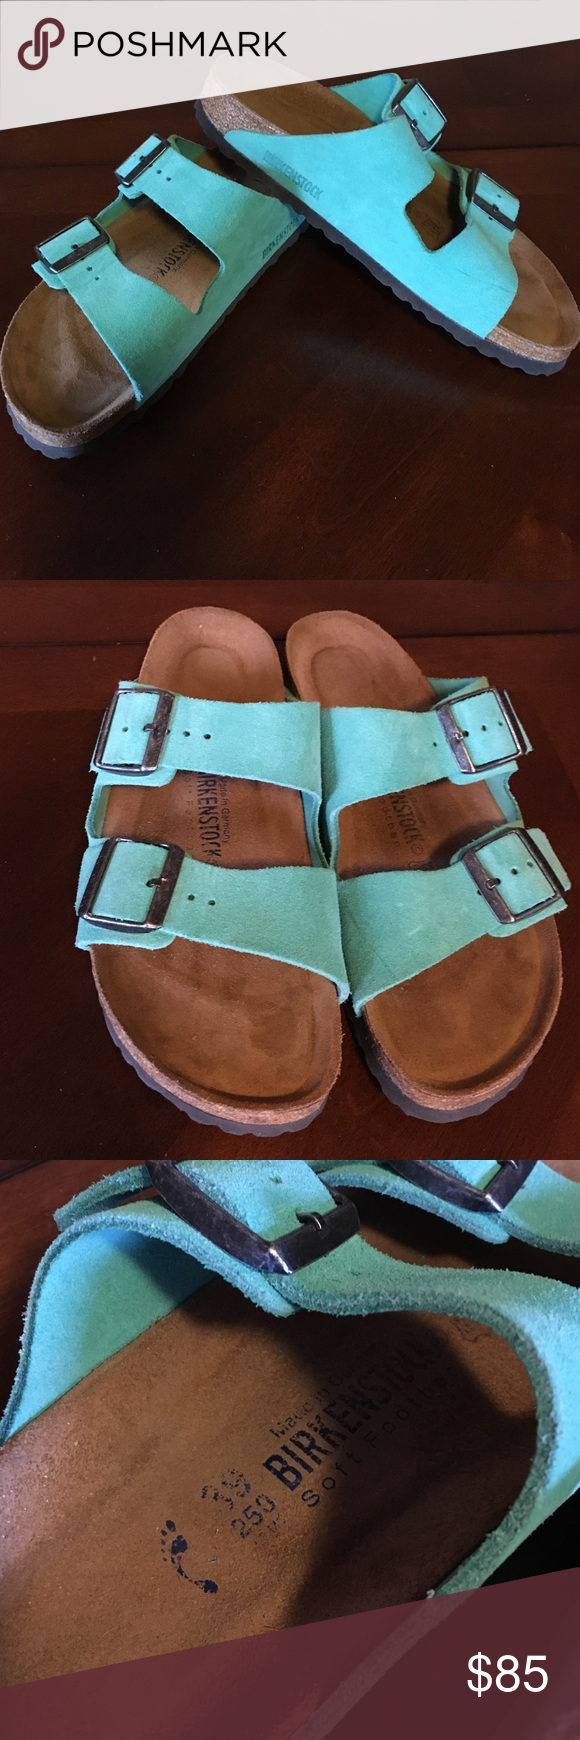 Teal Birkenstocks Brand new, real colored Birkenstocks Birkenstock Shoes Sandals